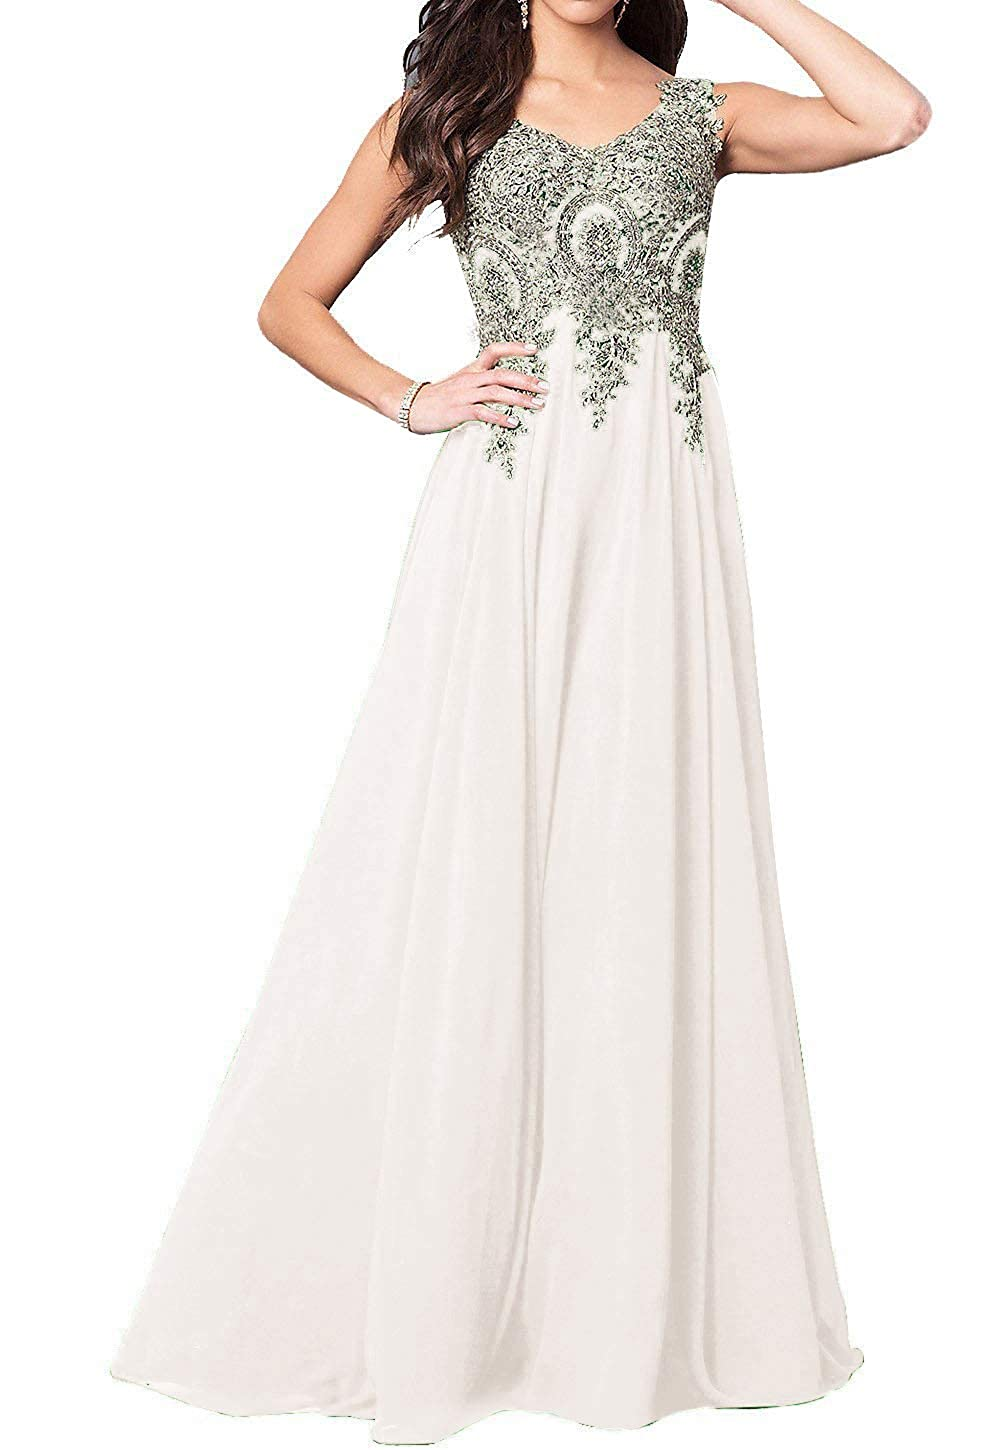 Ivory GMAR Beaded Appliques Prom Dresses A Line V Neck Open Back Long Formal Gowns